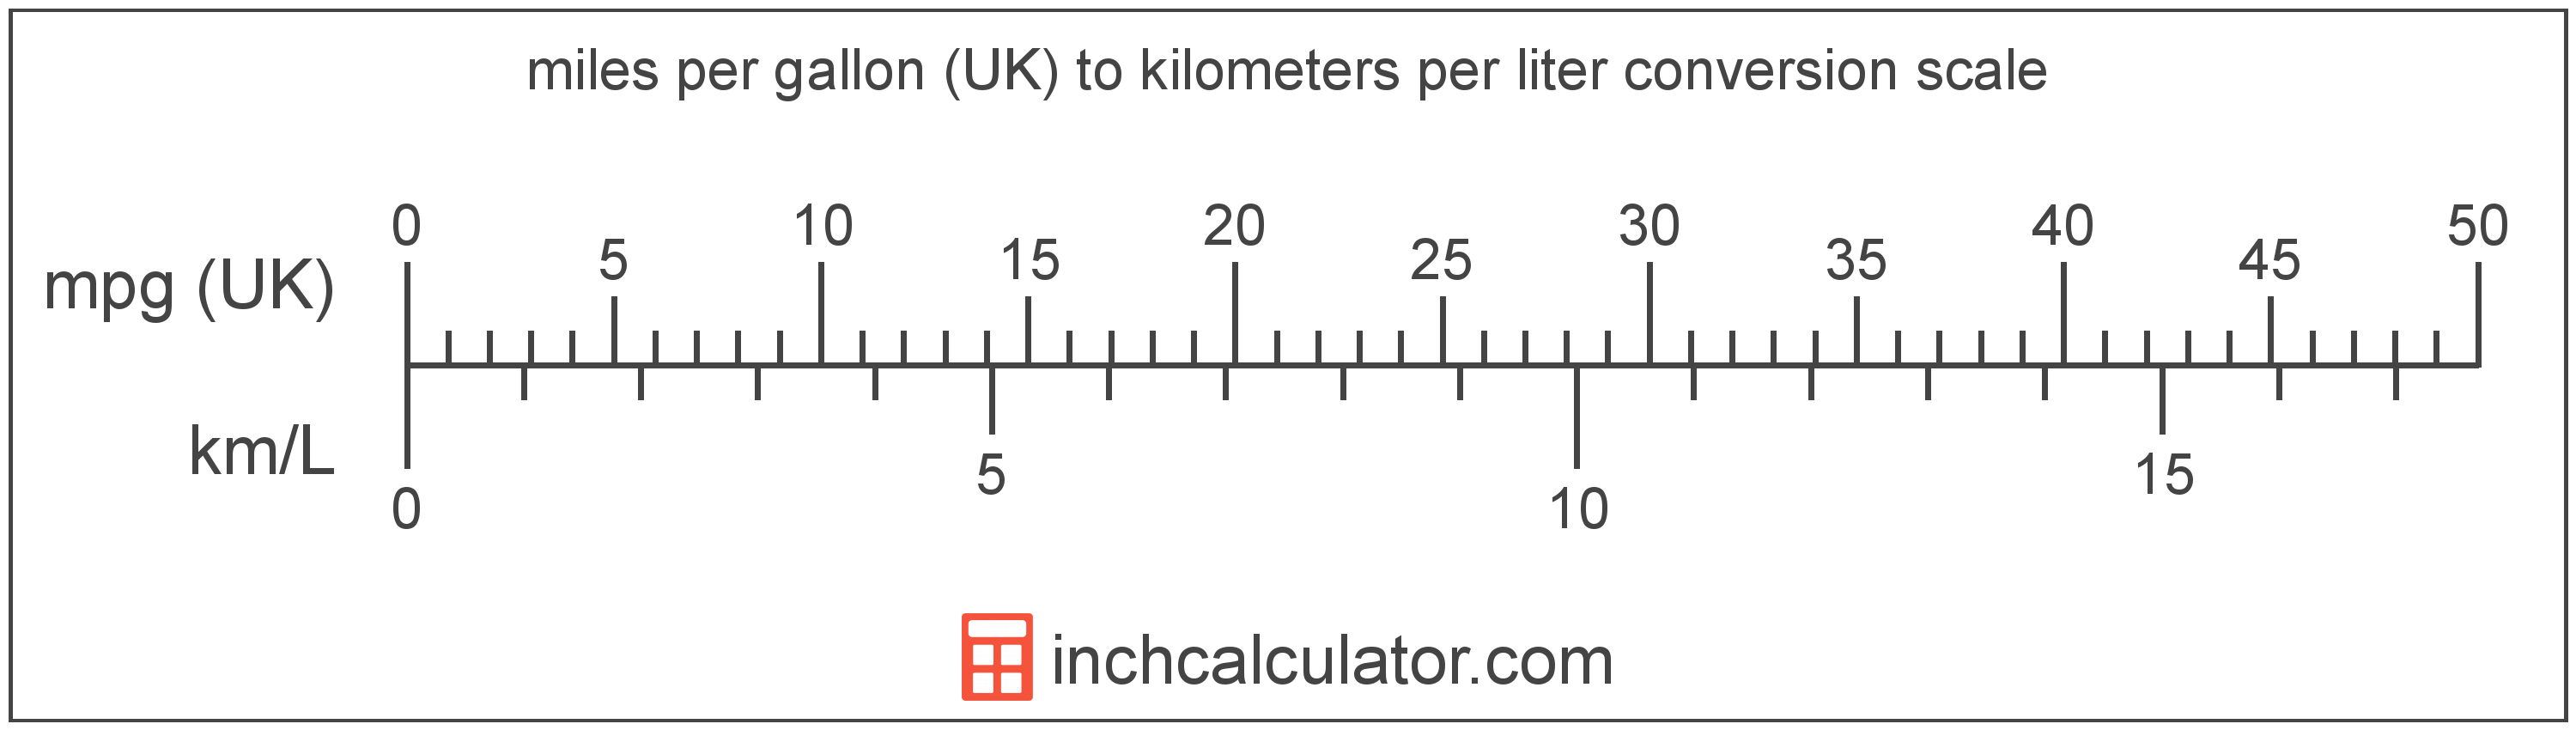 conversion scale showing kilometers per liter and equivalent miles per gallon (UK) fuel economy values